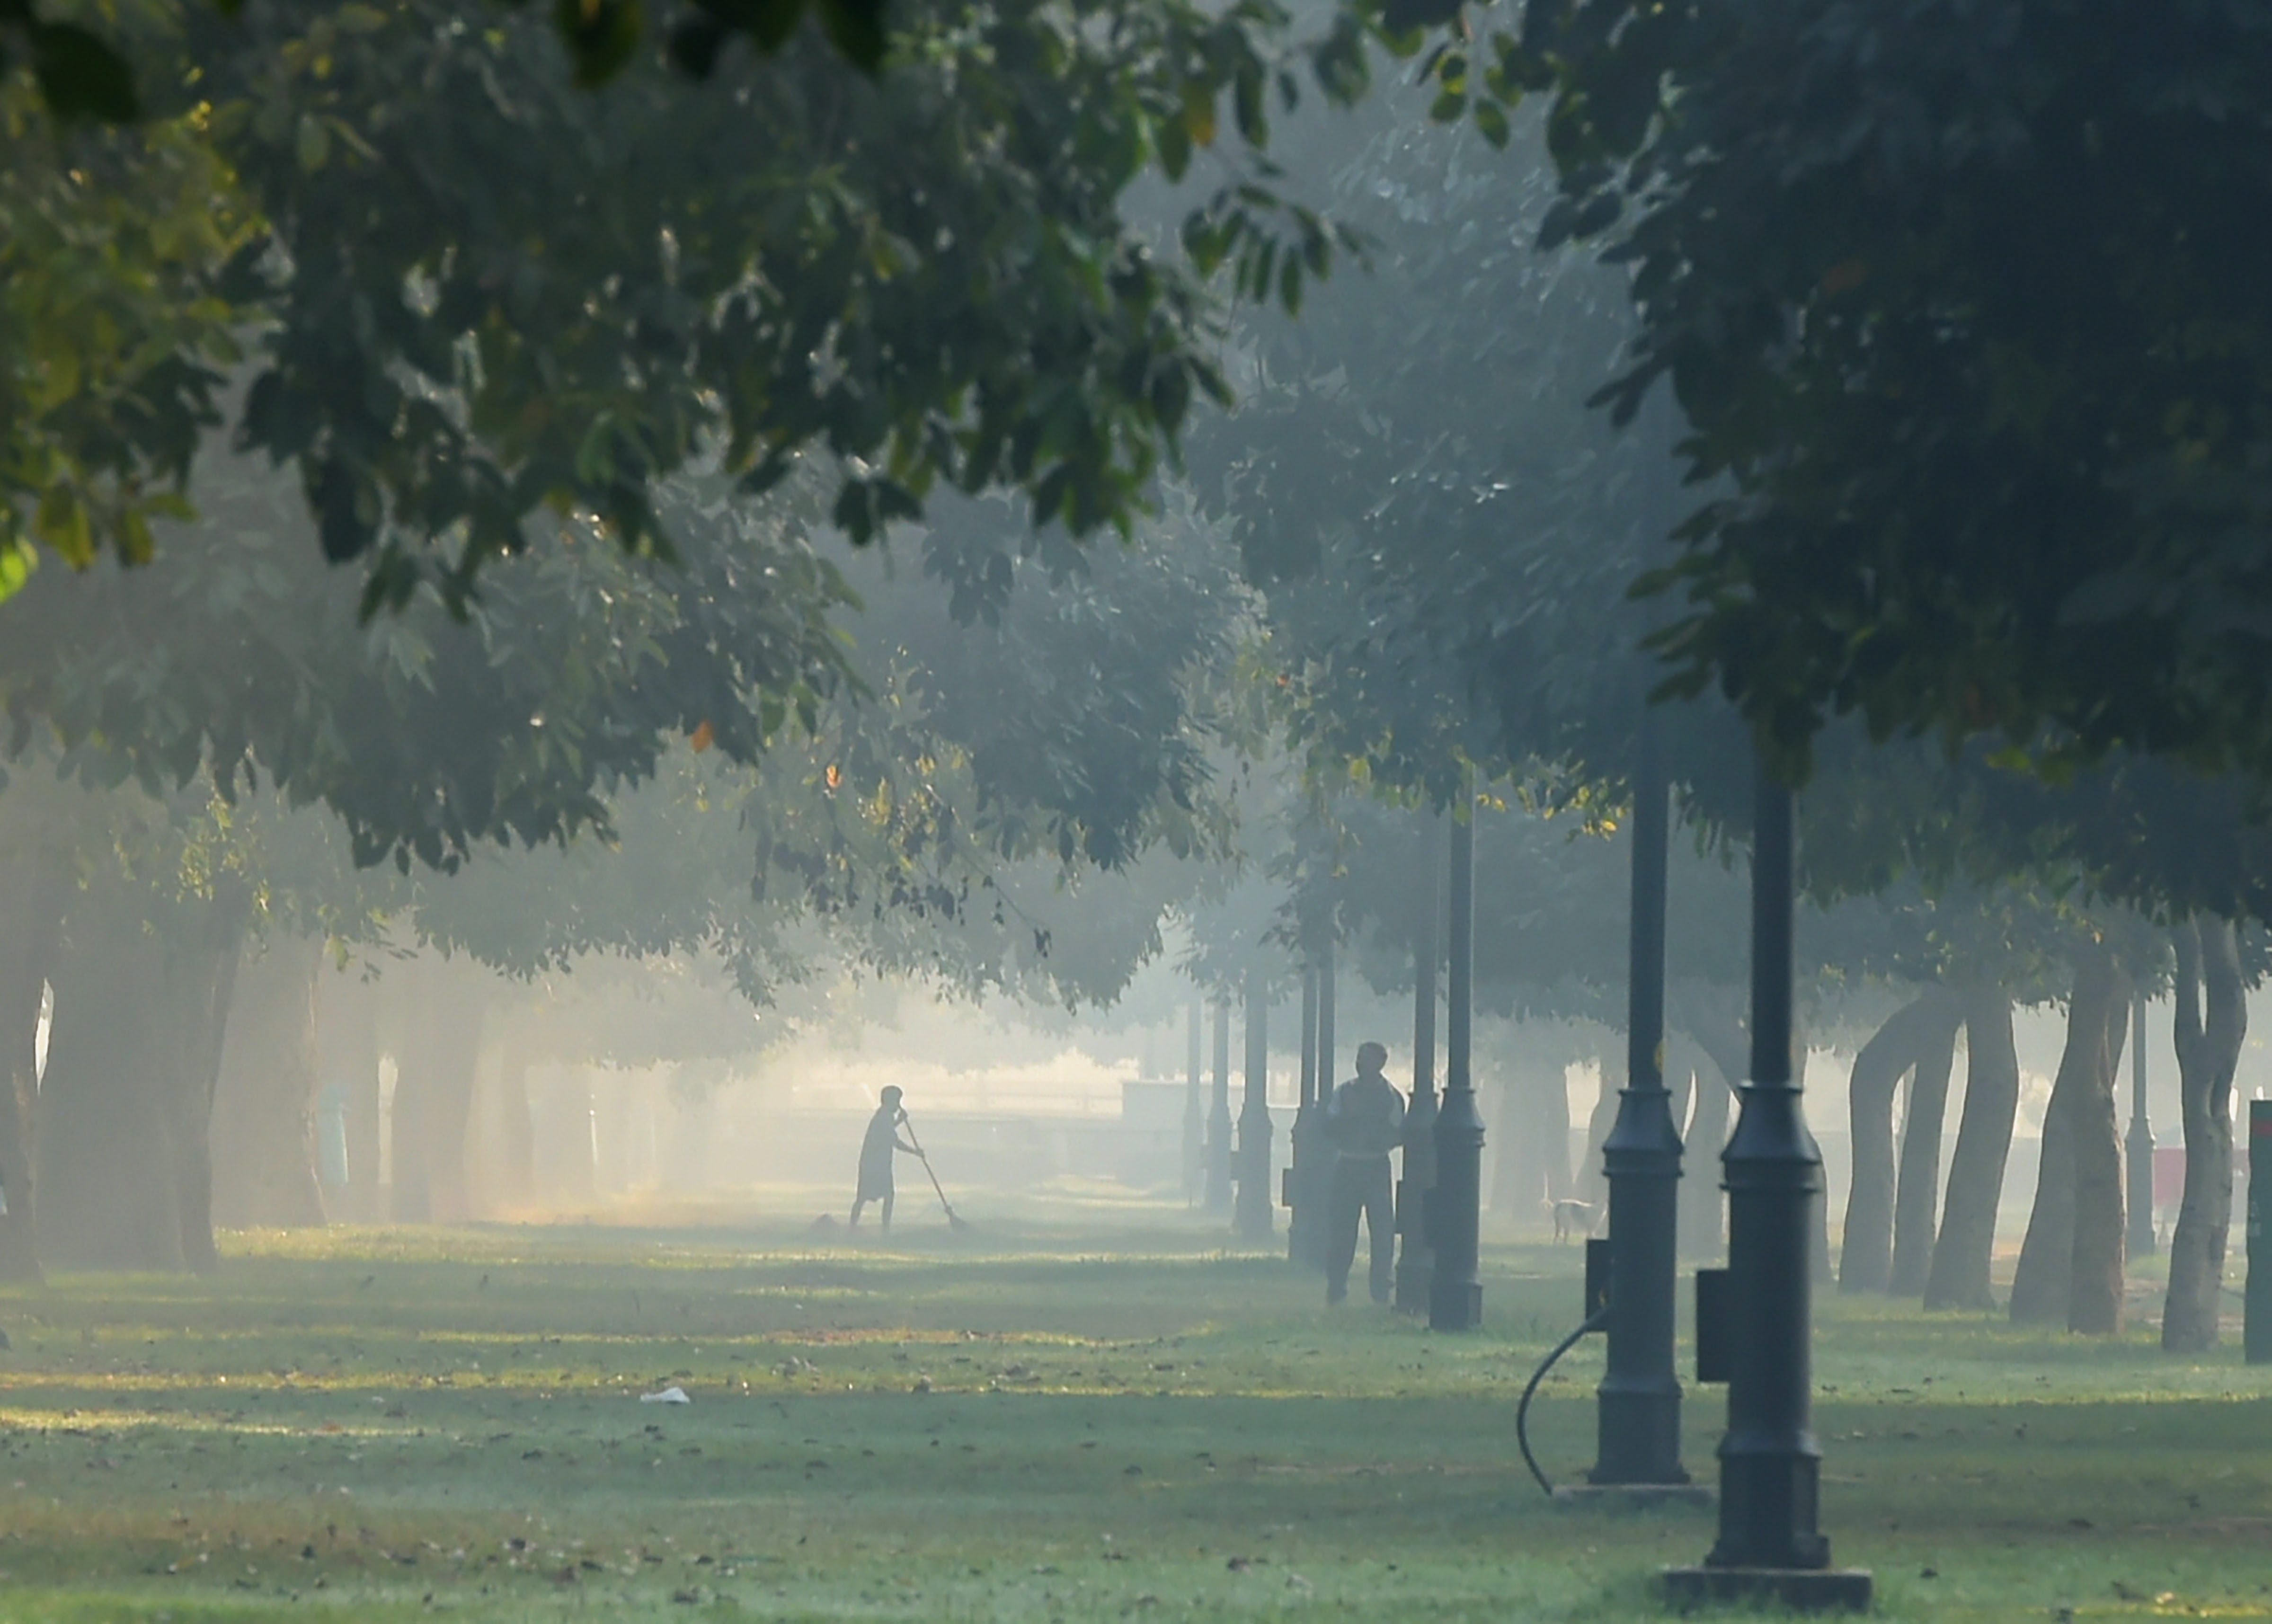 A view of Rajpath lawns engulfed in smog, in New Delhi, on Friday. The national capital is engulfed in haze and deadly air pollution with the onset of winters and festival season. PTI